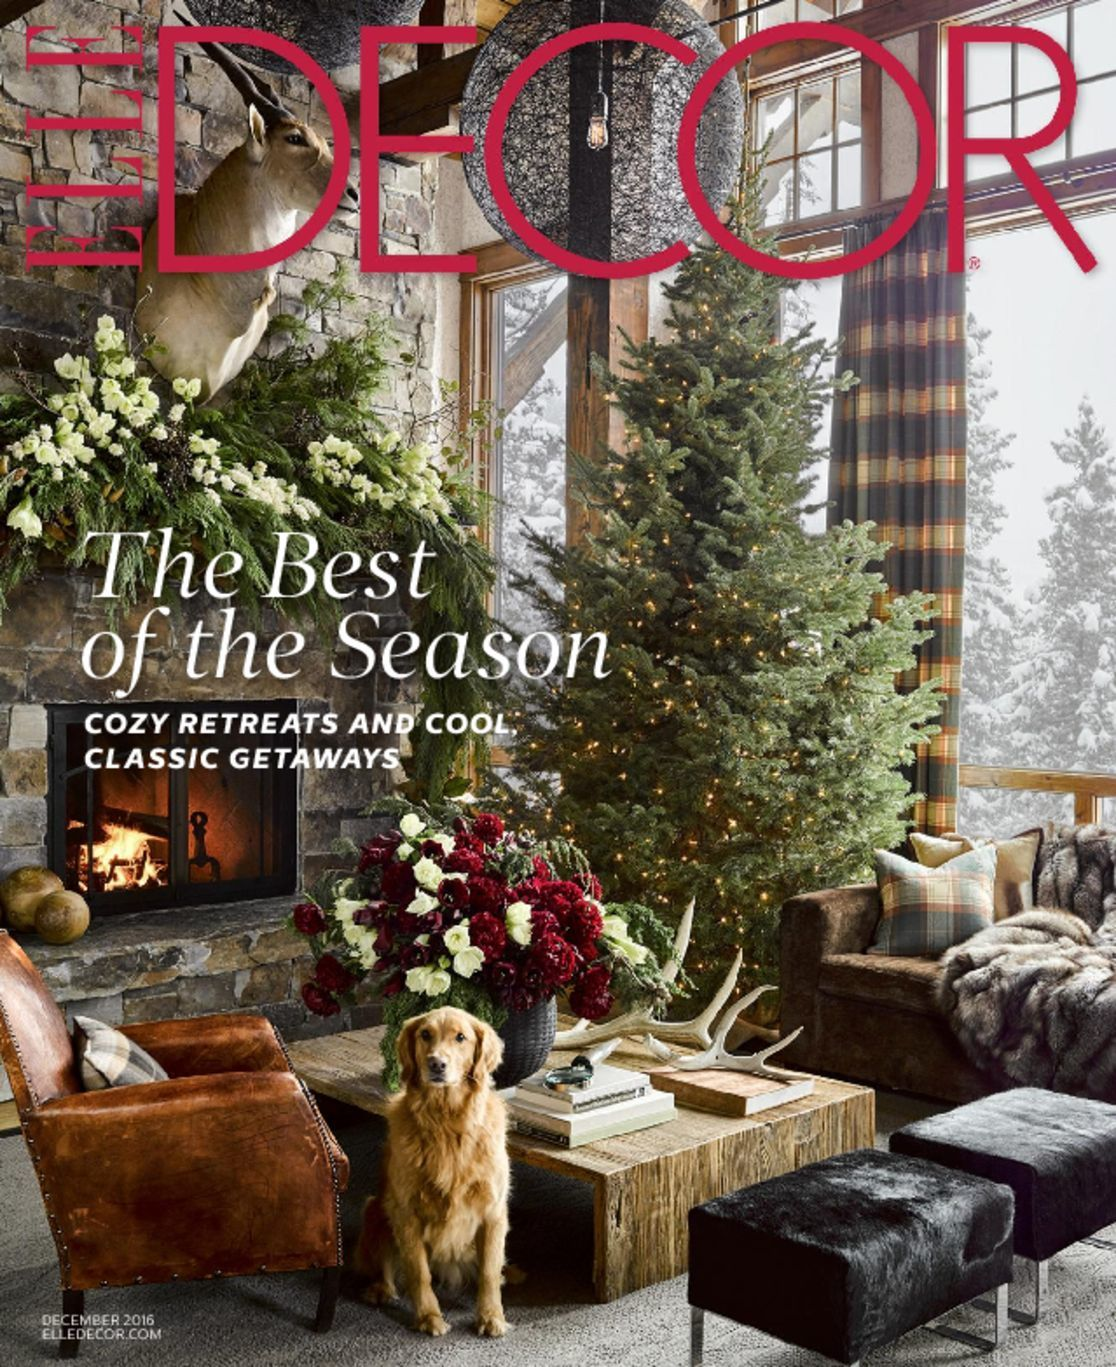 5667-elle-decor-Cover-2016-December-1-Issue.jpg